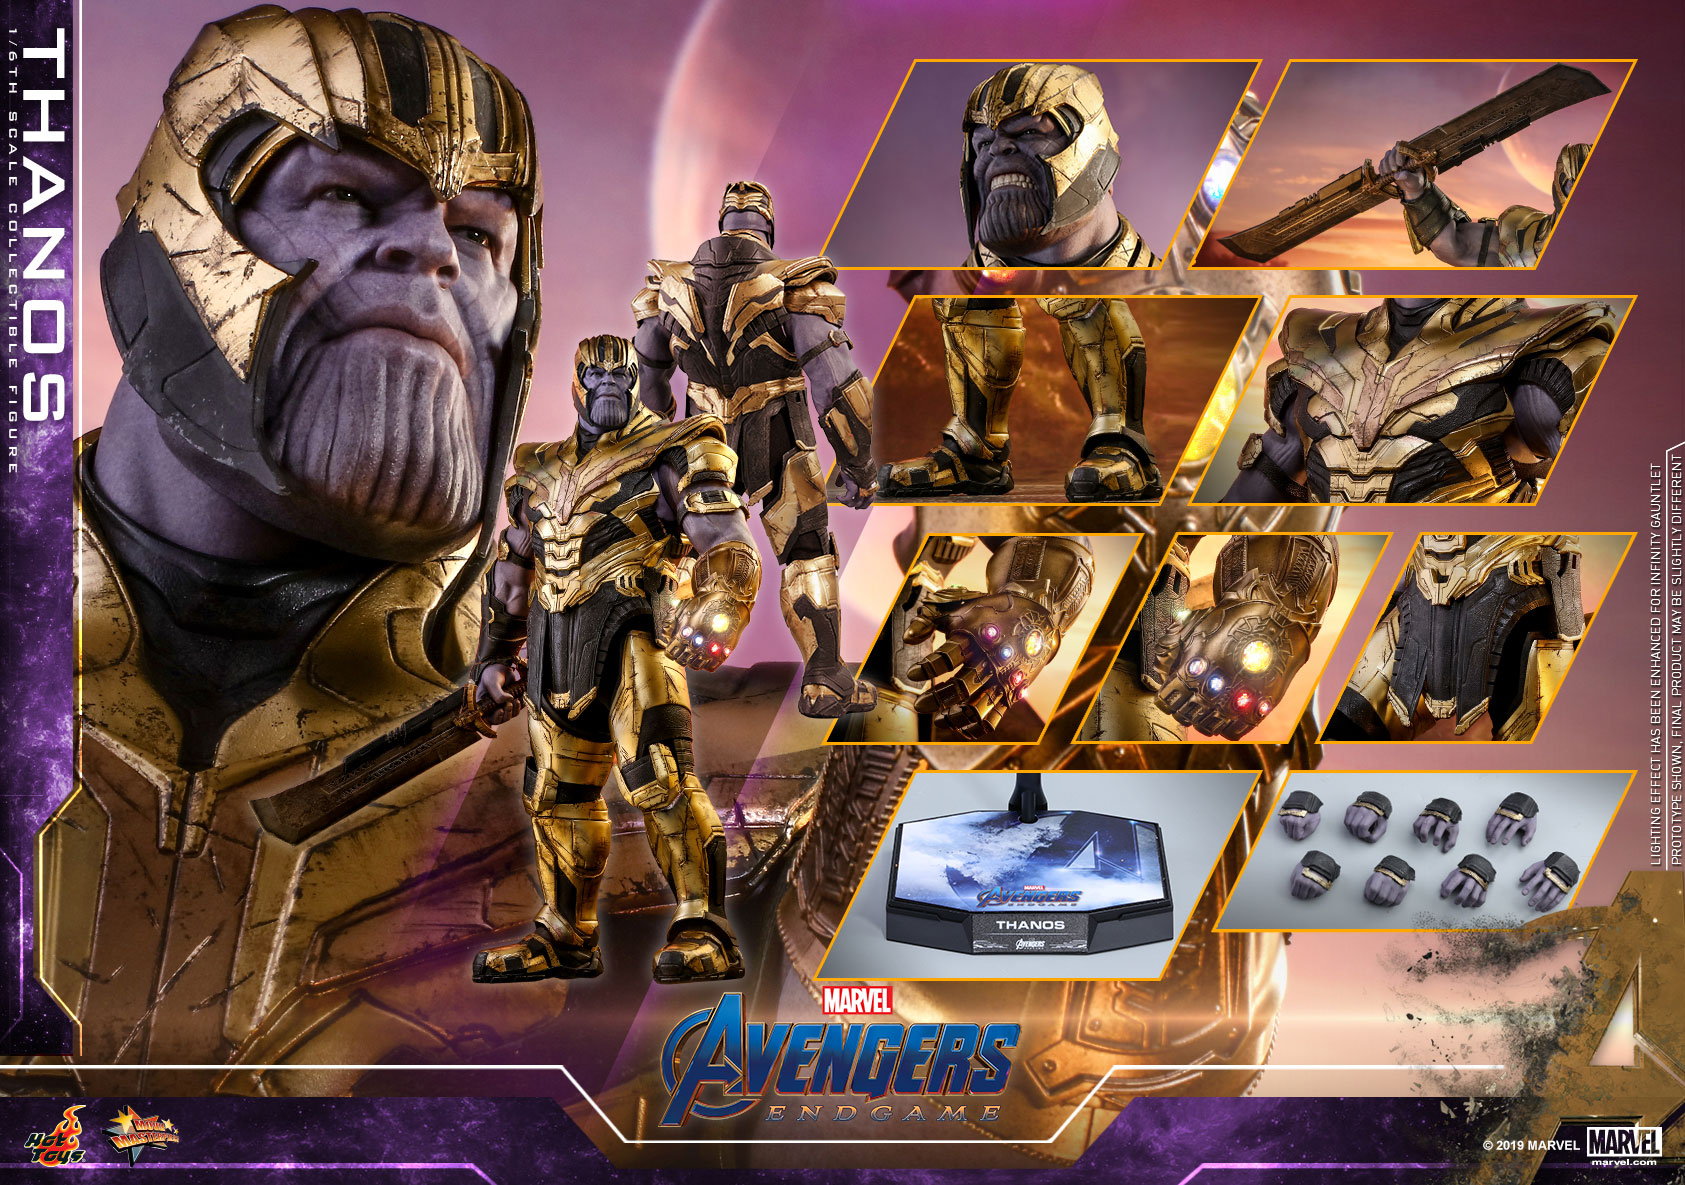 Hot-Toys---Avengers-4---Thanos-collectible-figure_PR24